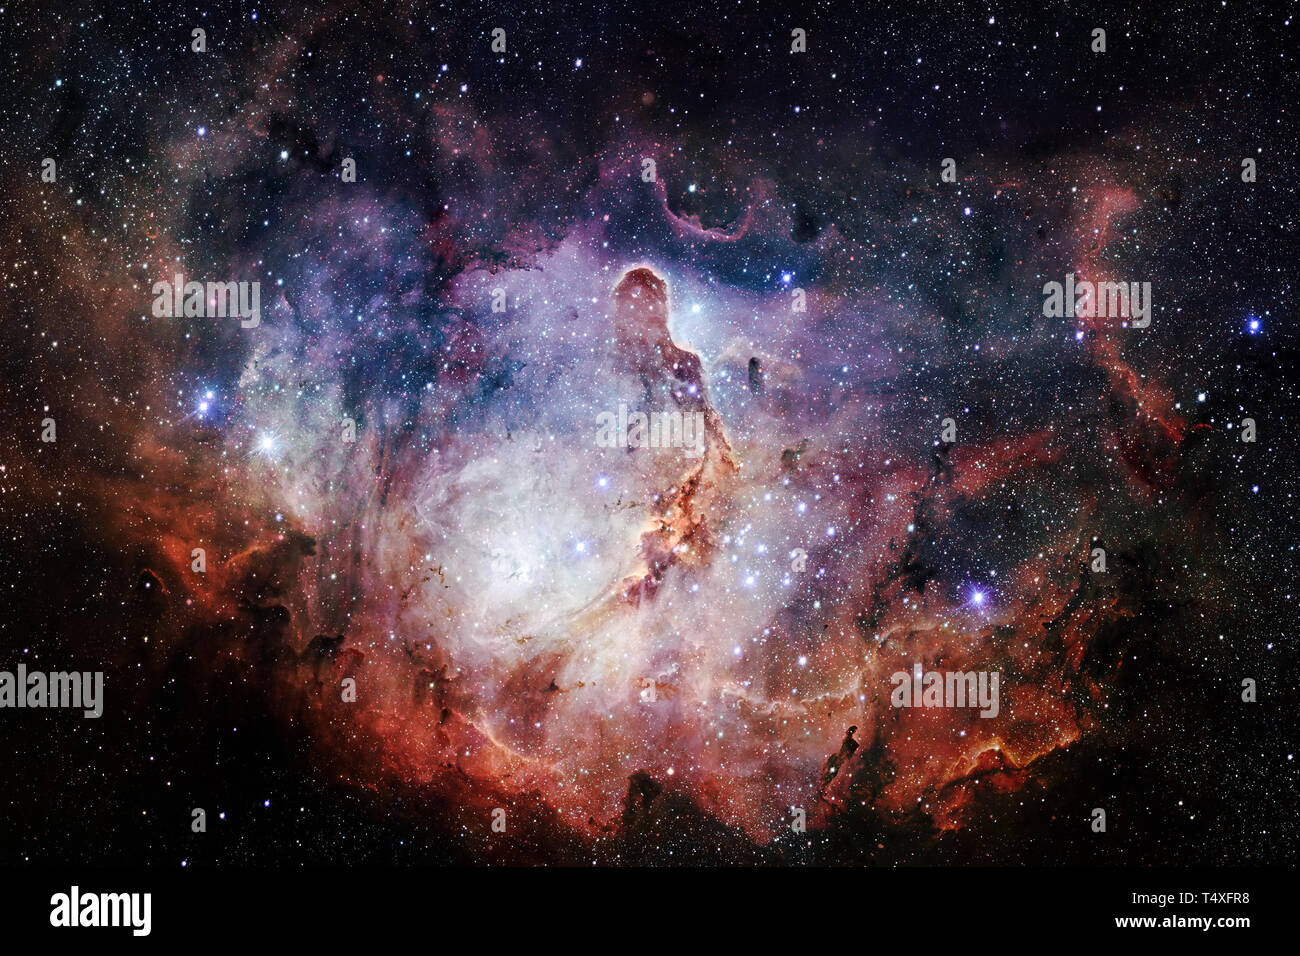 Beauty of outer space. Science fiction wallpaper. Elements of this image furnished by NASA - Stock Image